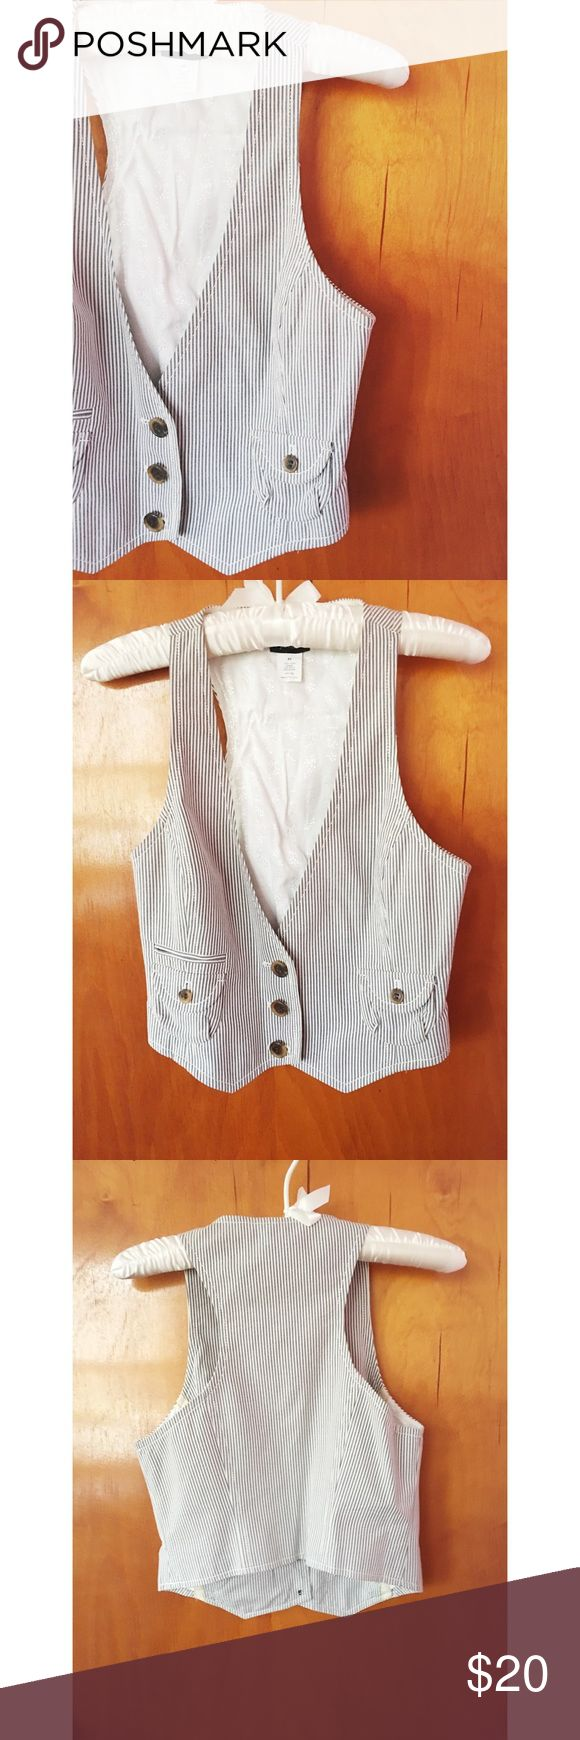 J.Crew Vest This J. Crew Vest is in great condition and a size X-Small.  It is a navy blue and white pinstripe. Outer fabric is cotton and lining is a rayon and acetate blend. Super cute J. Crew Jackets & Coats Vests